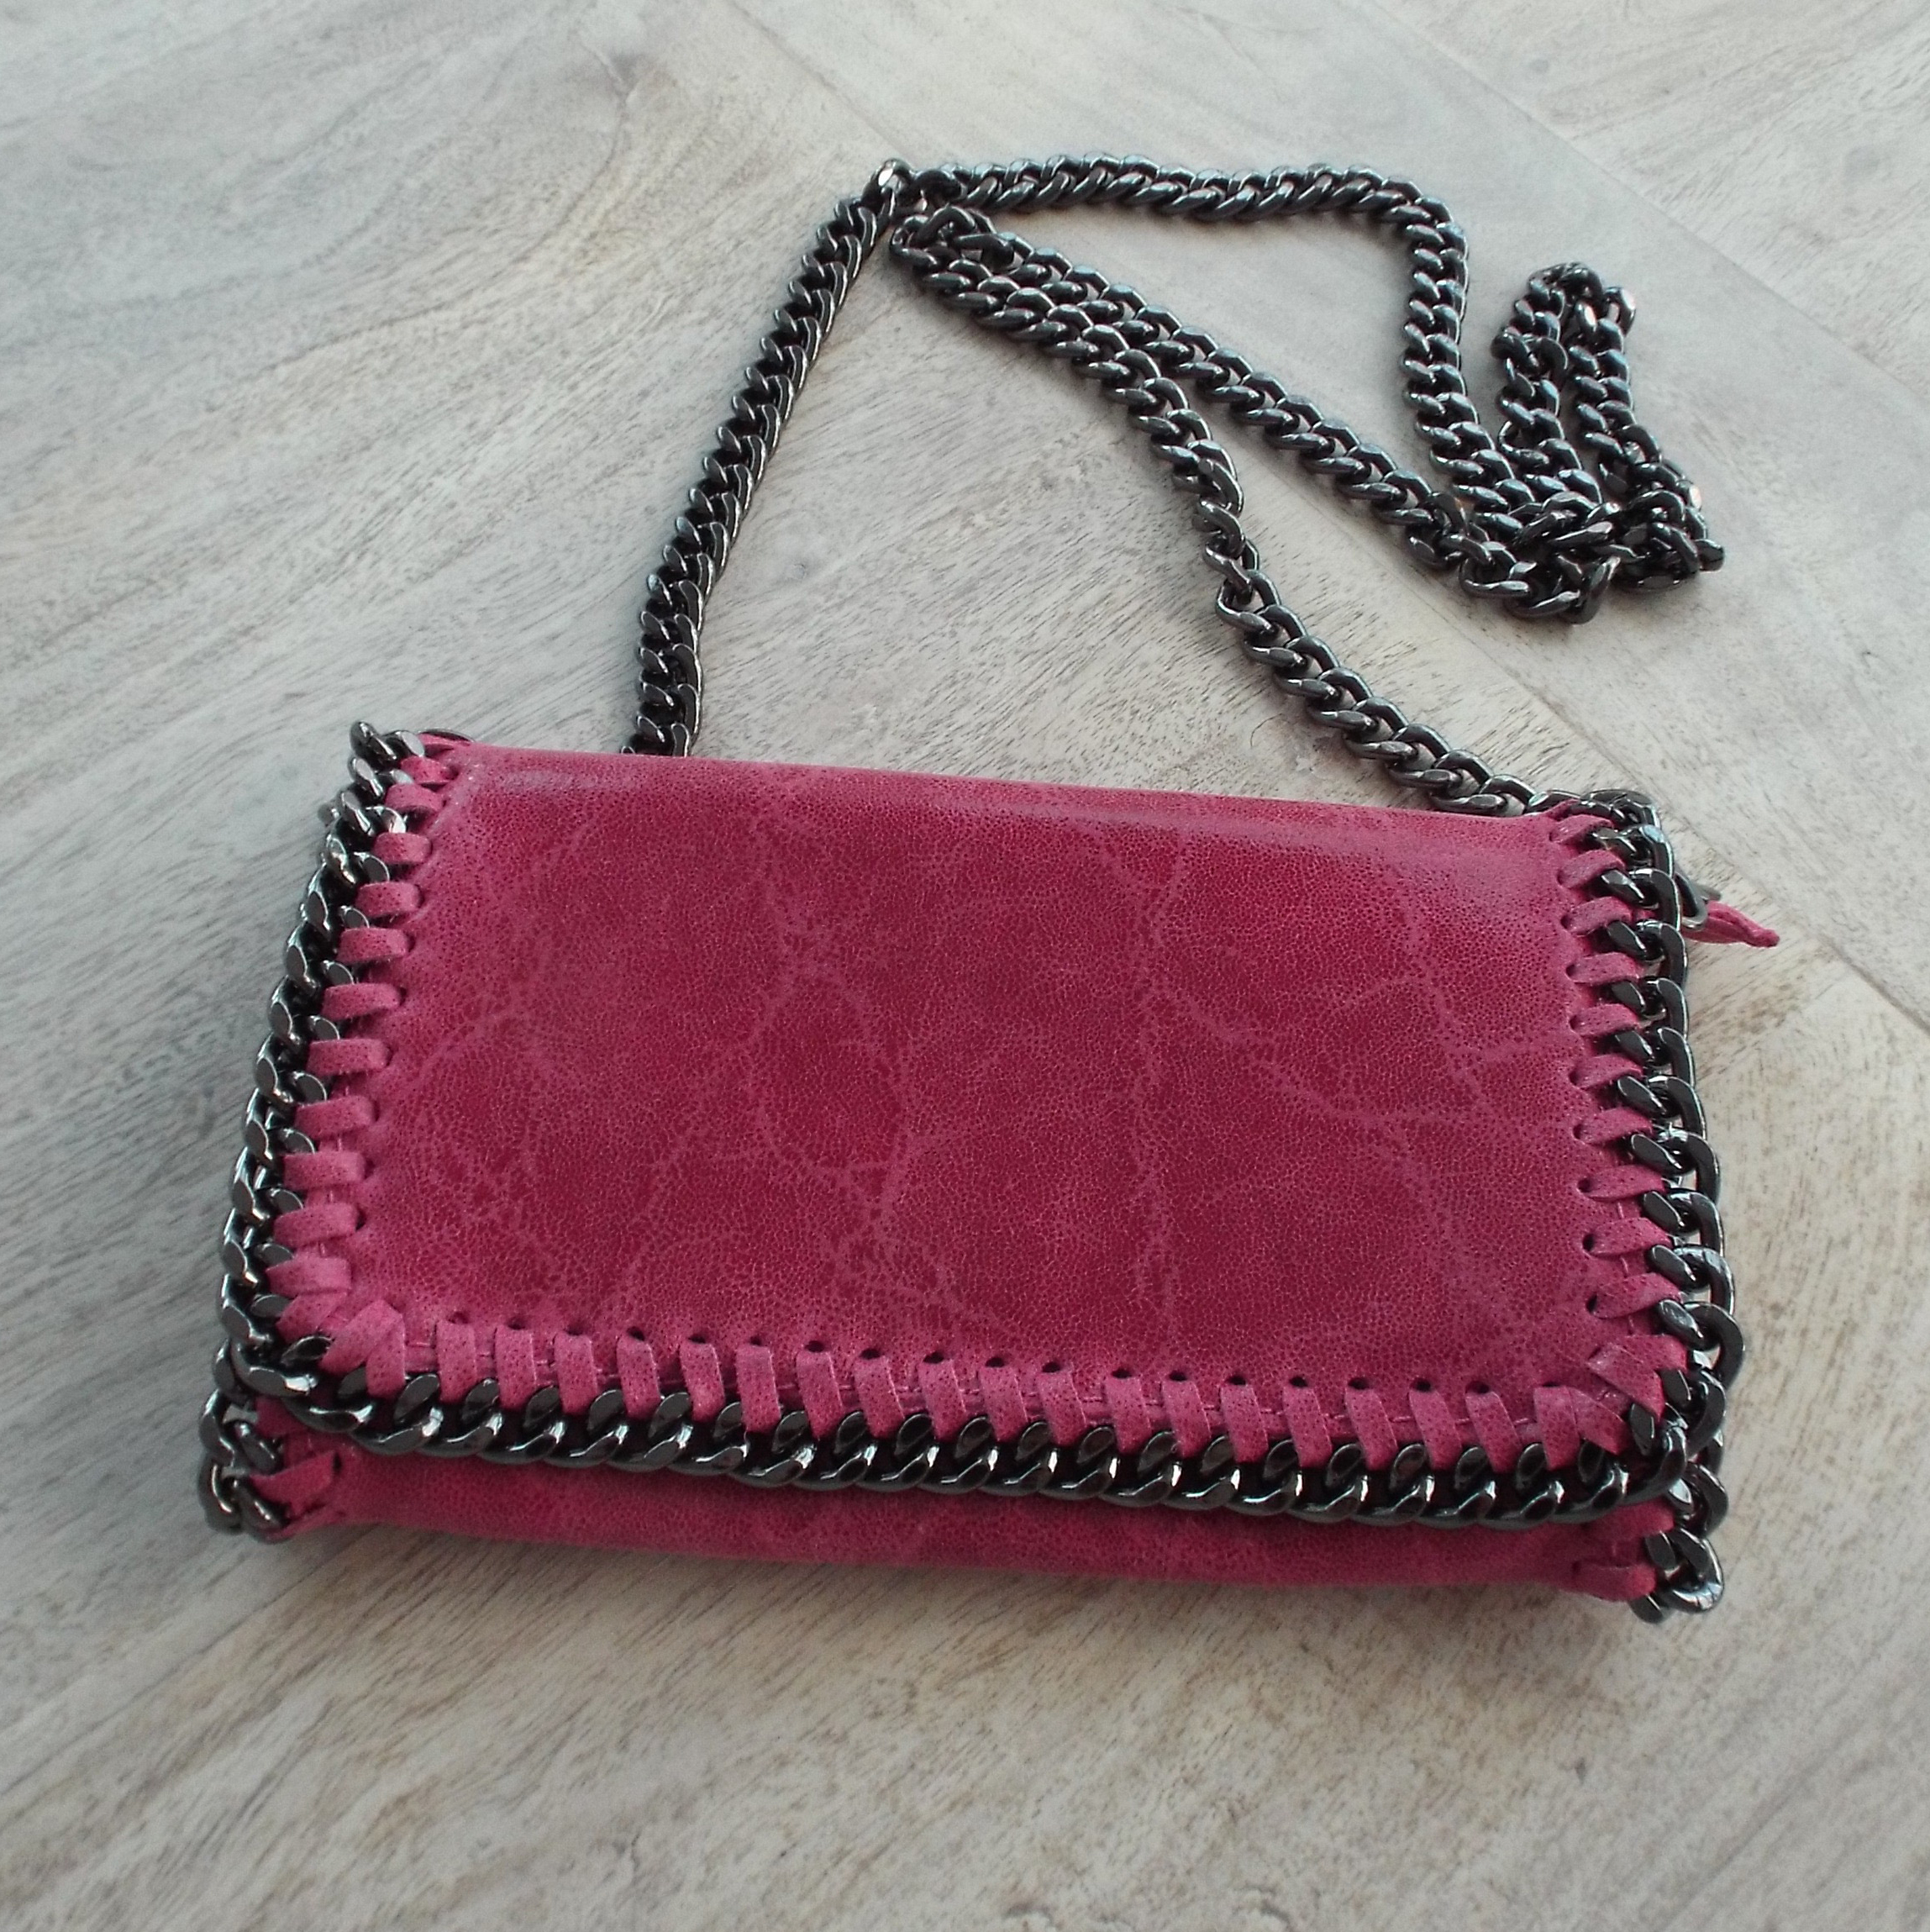 pink leather clutch bag